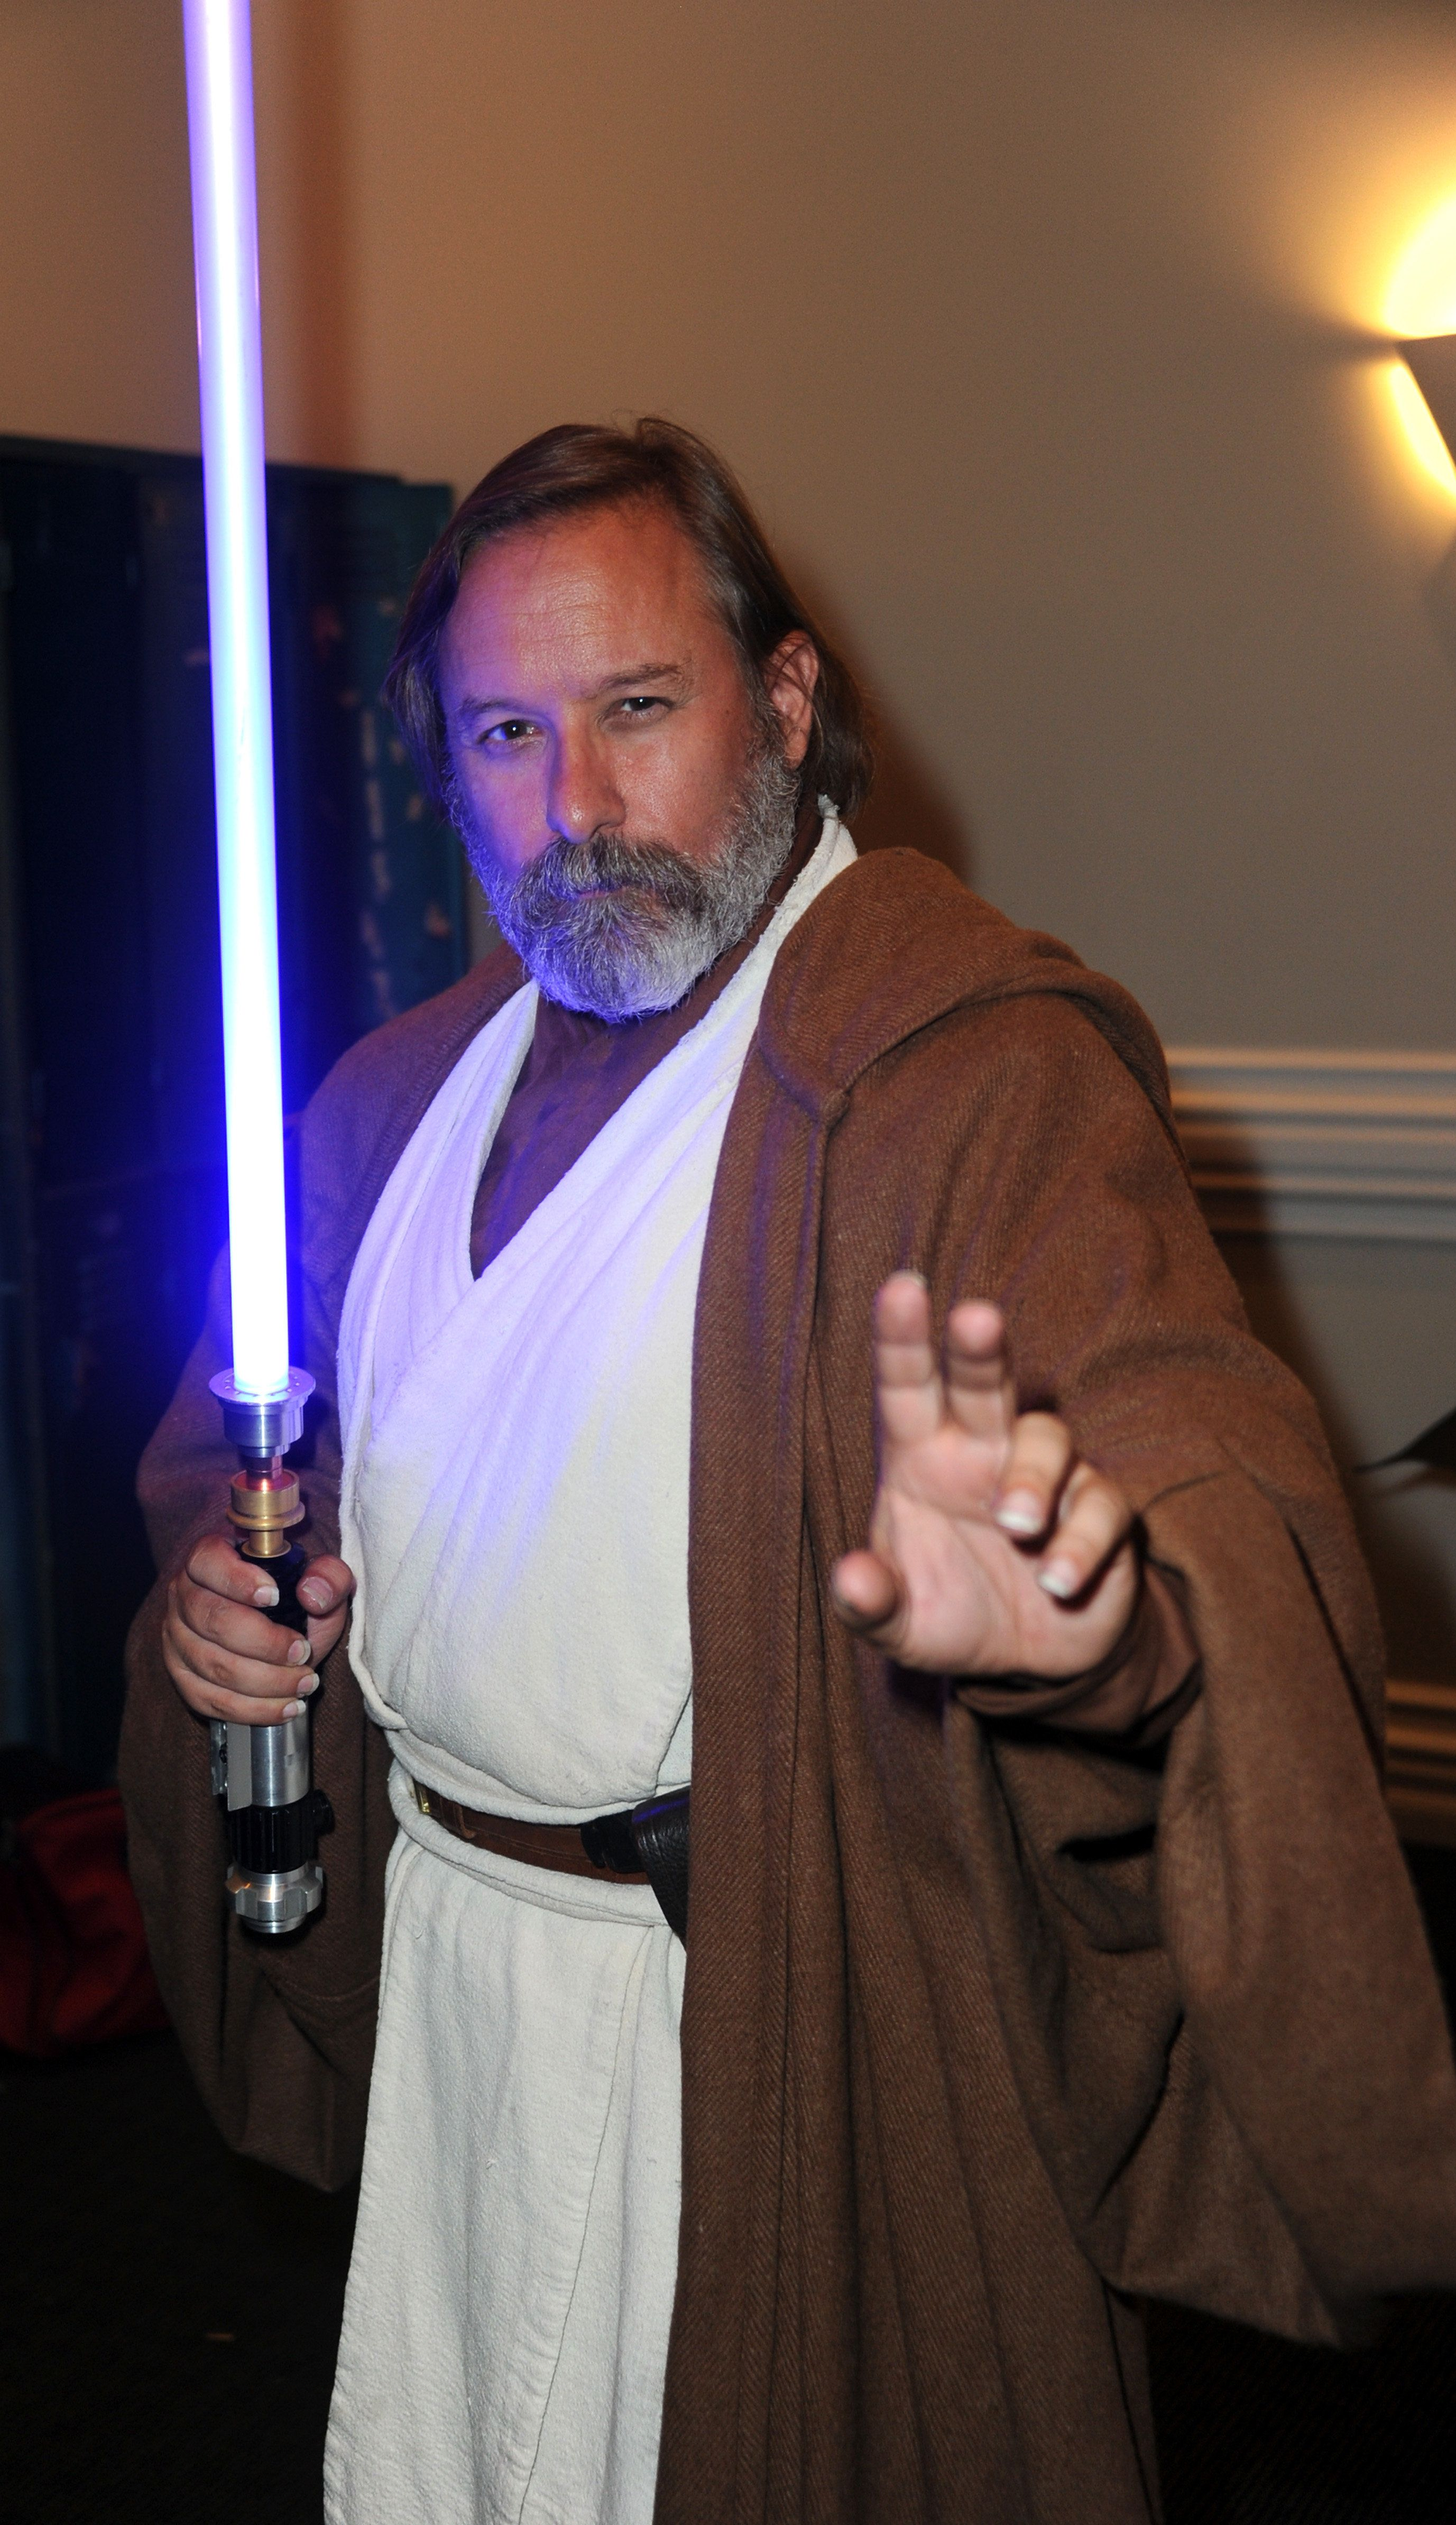 BURBANK, CA - JUNE 22:  Cosplayer Shawn Crosby as ObiWan Kenobi at the 42nd Annual Saturn Awards - After Party held at The Castaway on June 22, 2016 in Burbank, California.  (Photo by Albert L. Ortega/Getty Images)